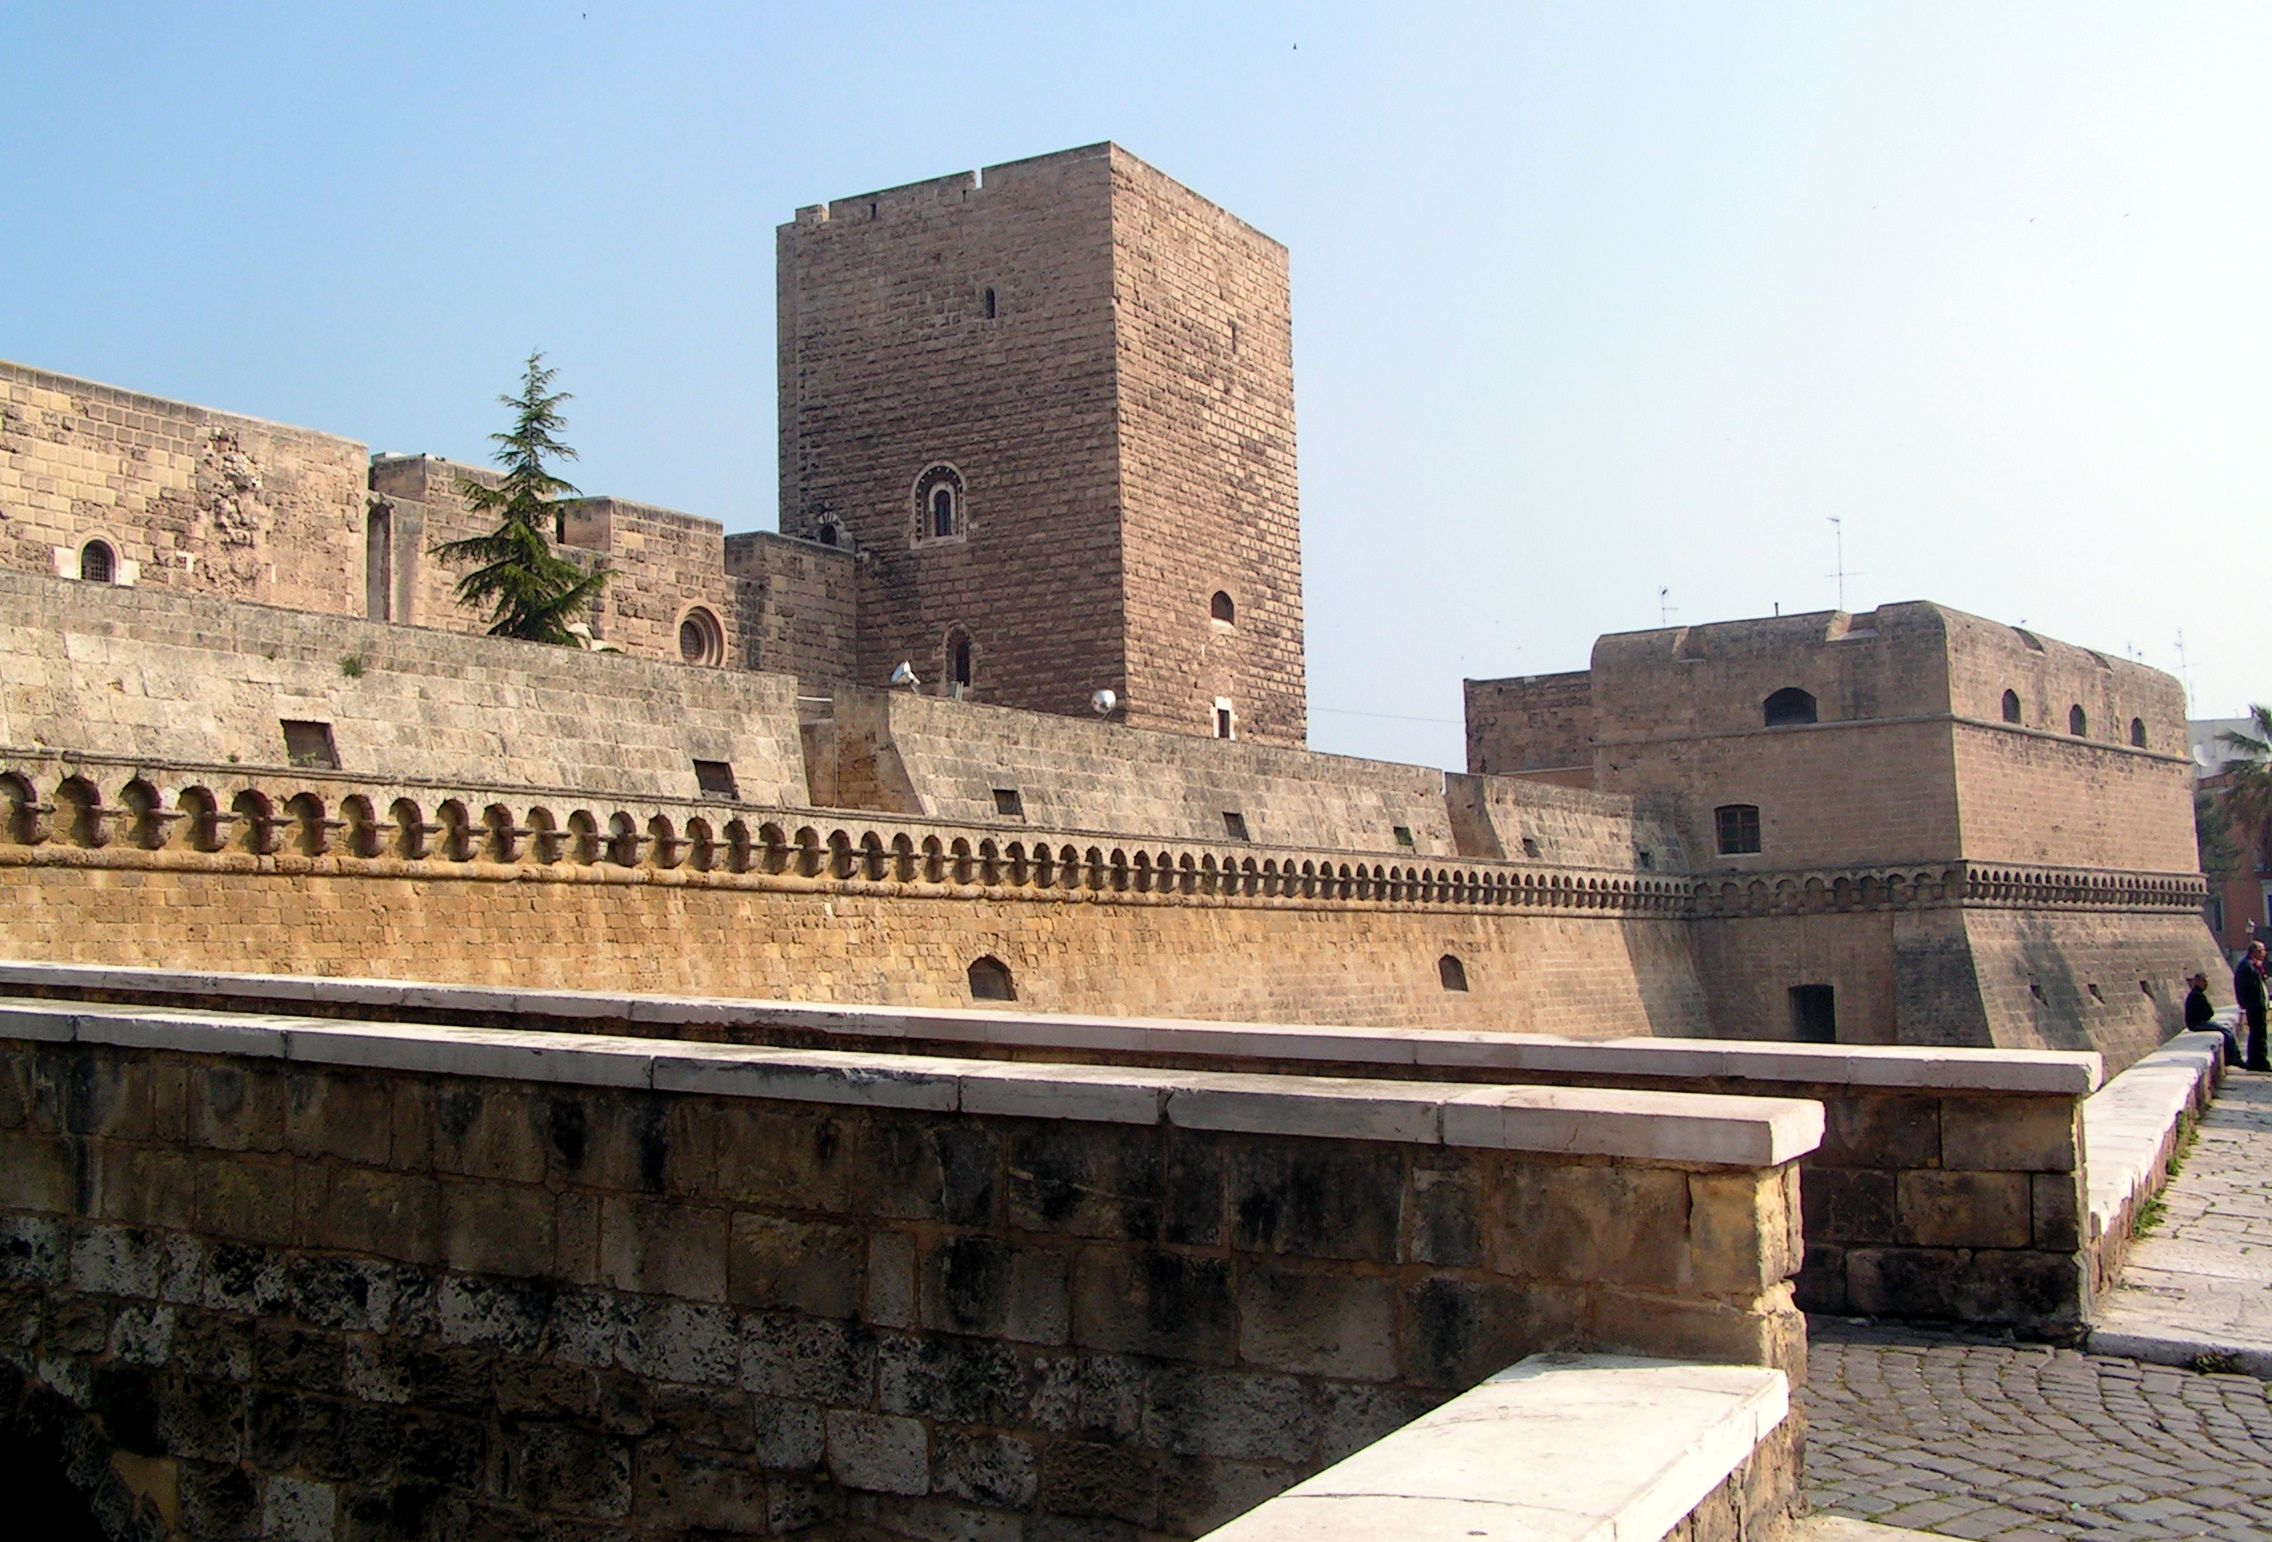 bari_castello_view.jpg